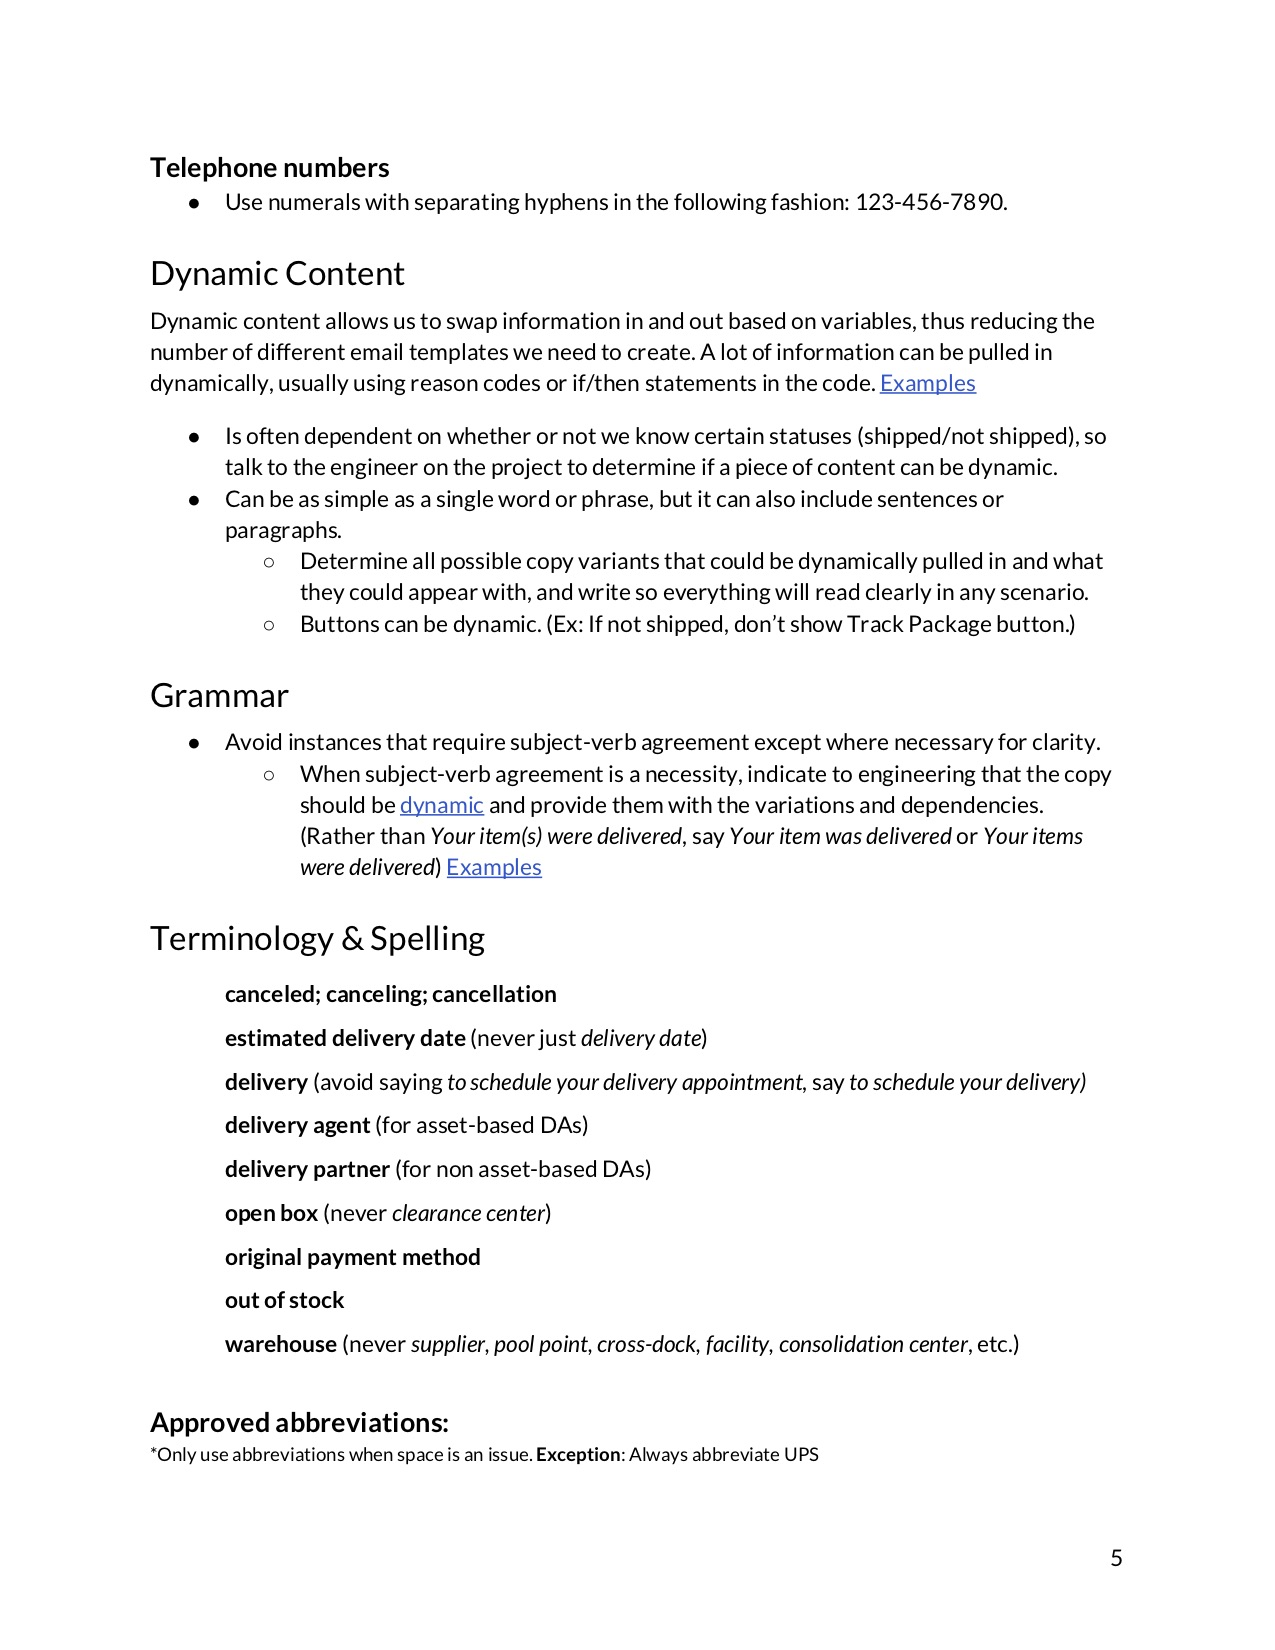 fifth page of a content guide document explaining how to use dynamic content and listing approved spellings